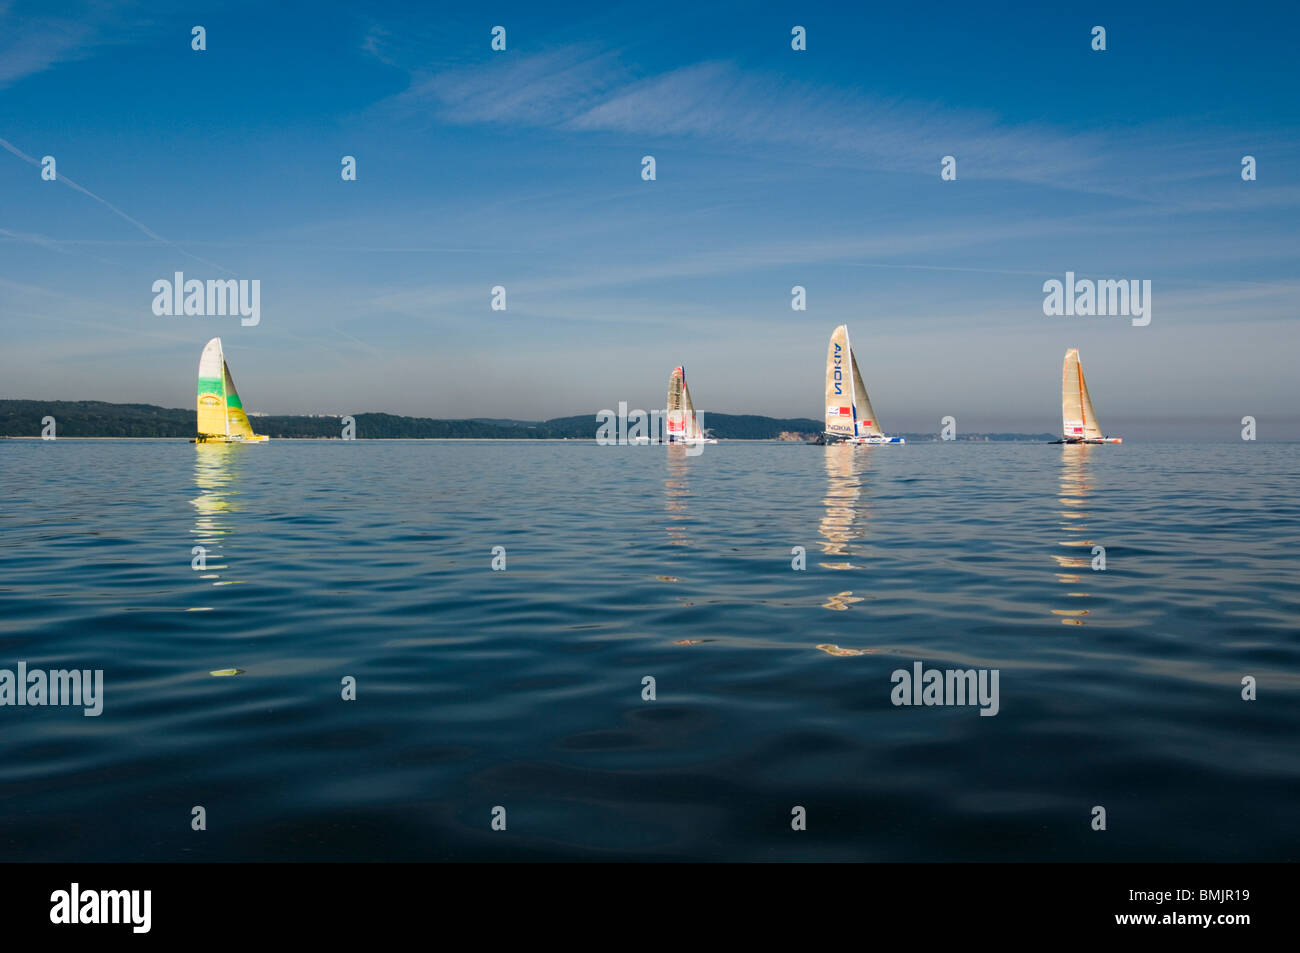 Sailboats on a calm ocean - Stock Image